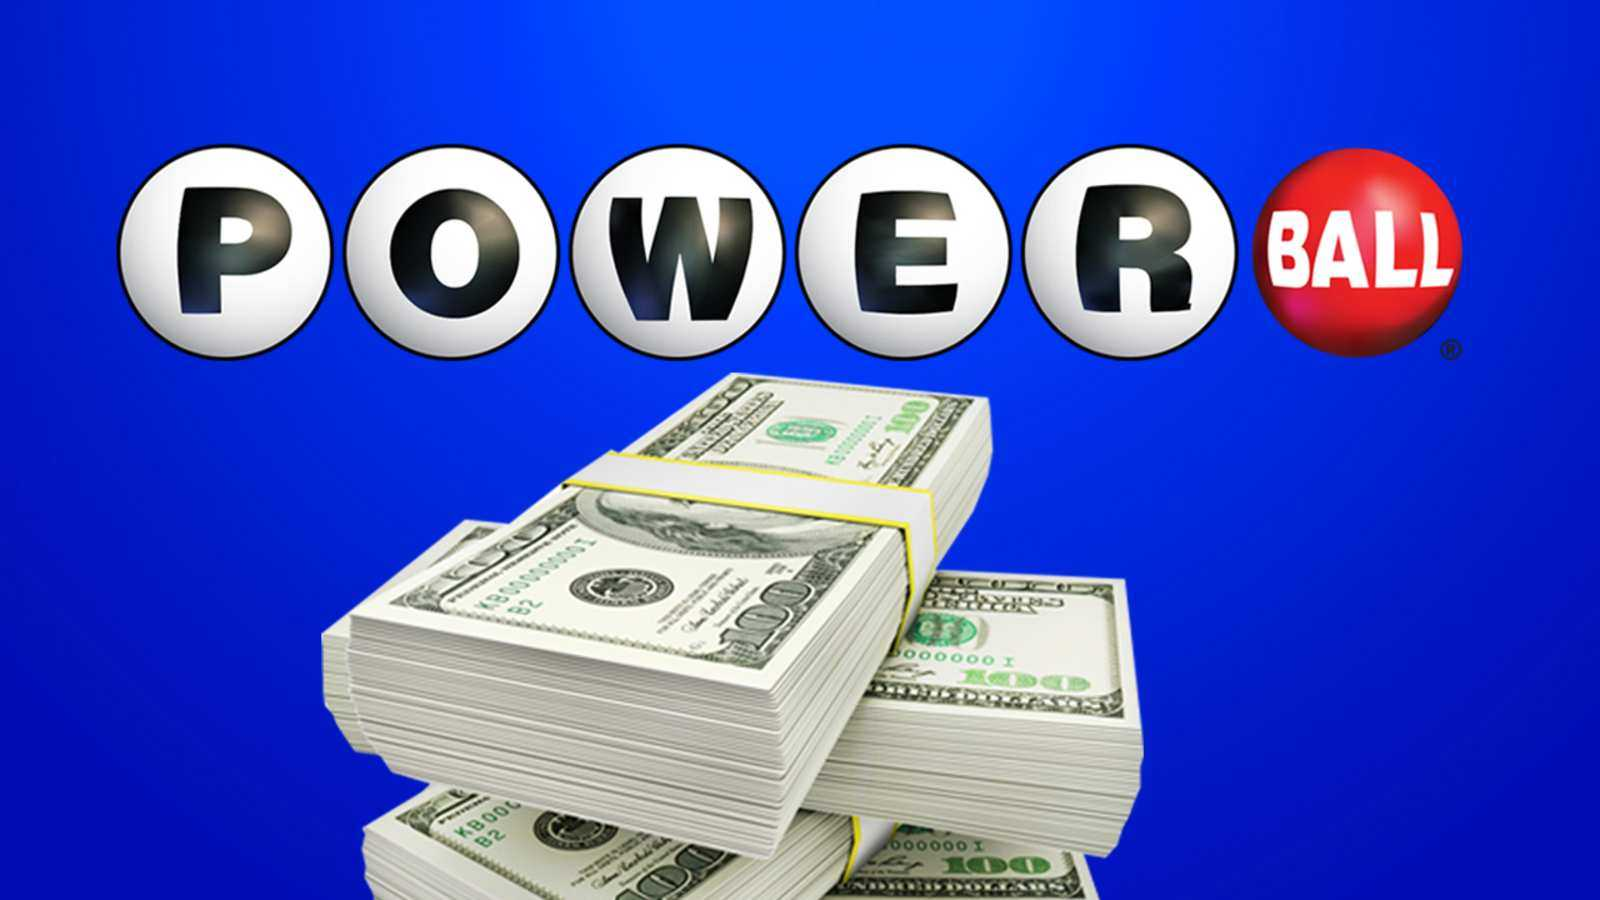 Us powerball jackpot swells to $650million